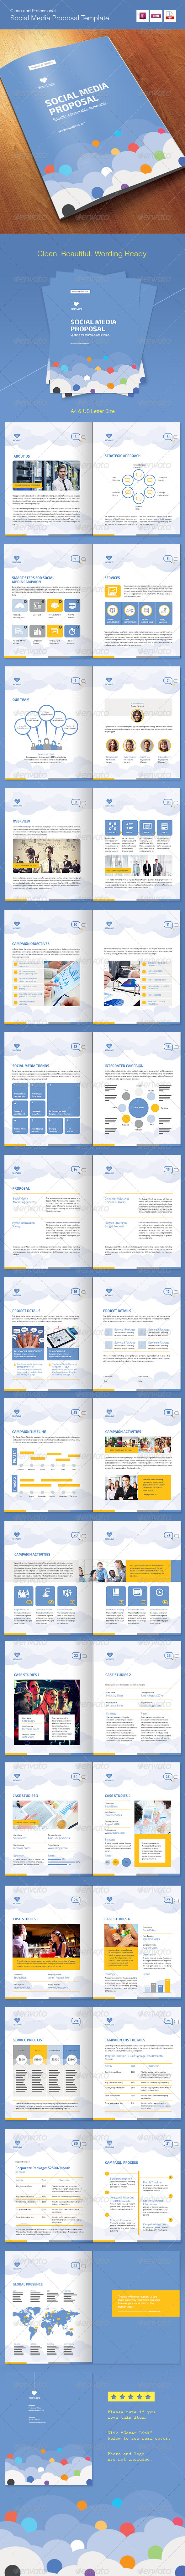 GraphicRiver Social Media Proposal Template 7994619